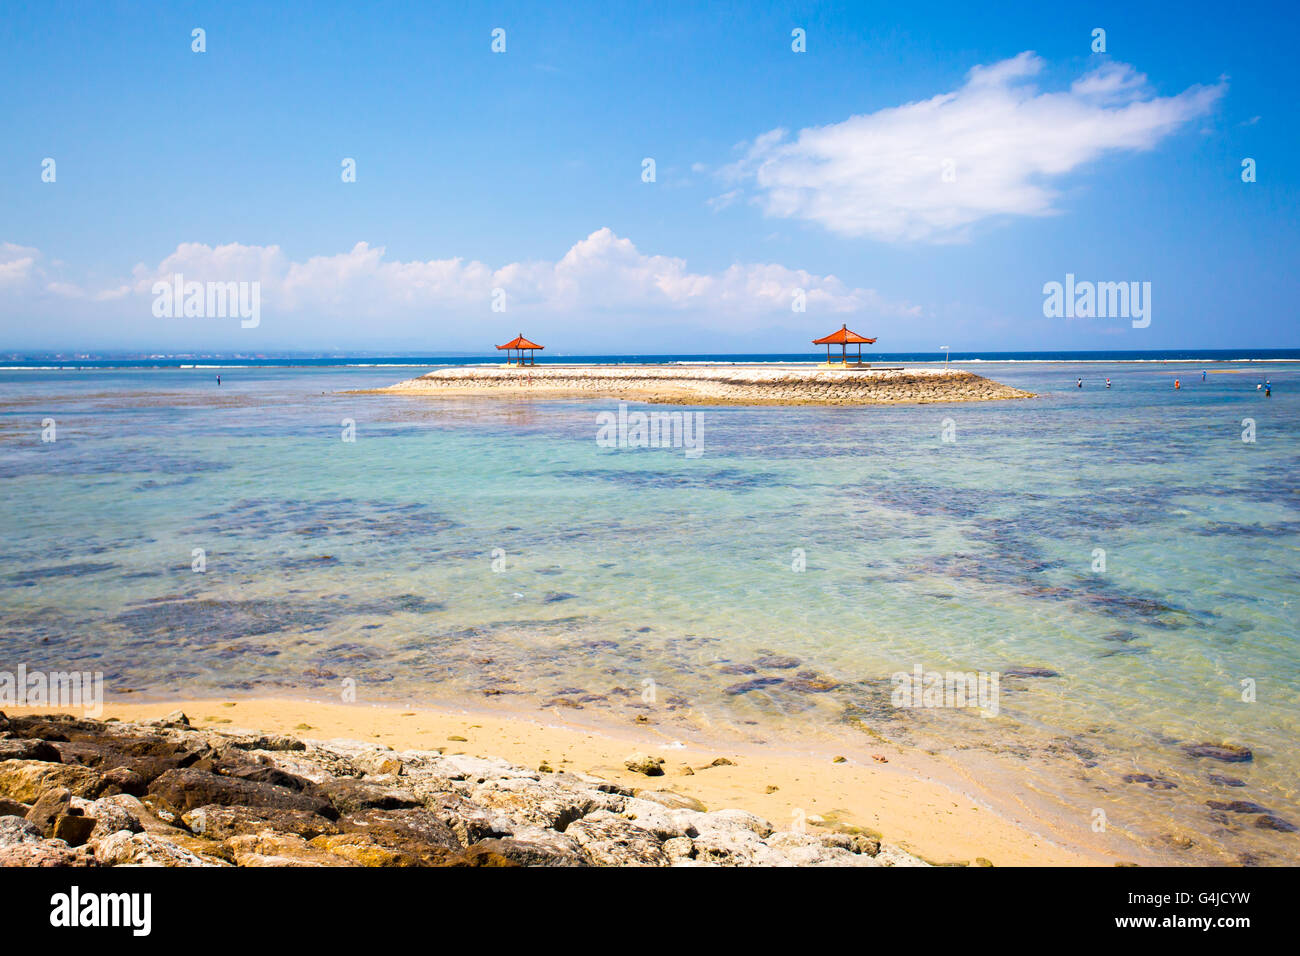 A Sanur beach scene on a hot day in Bali, Indonesia - Stock Image